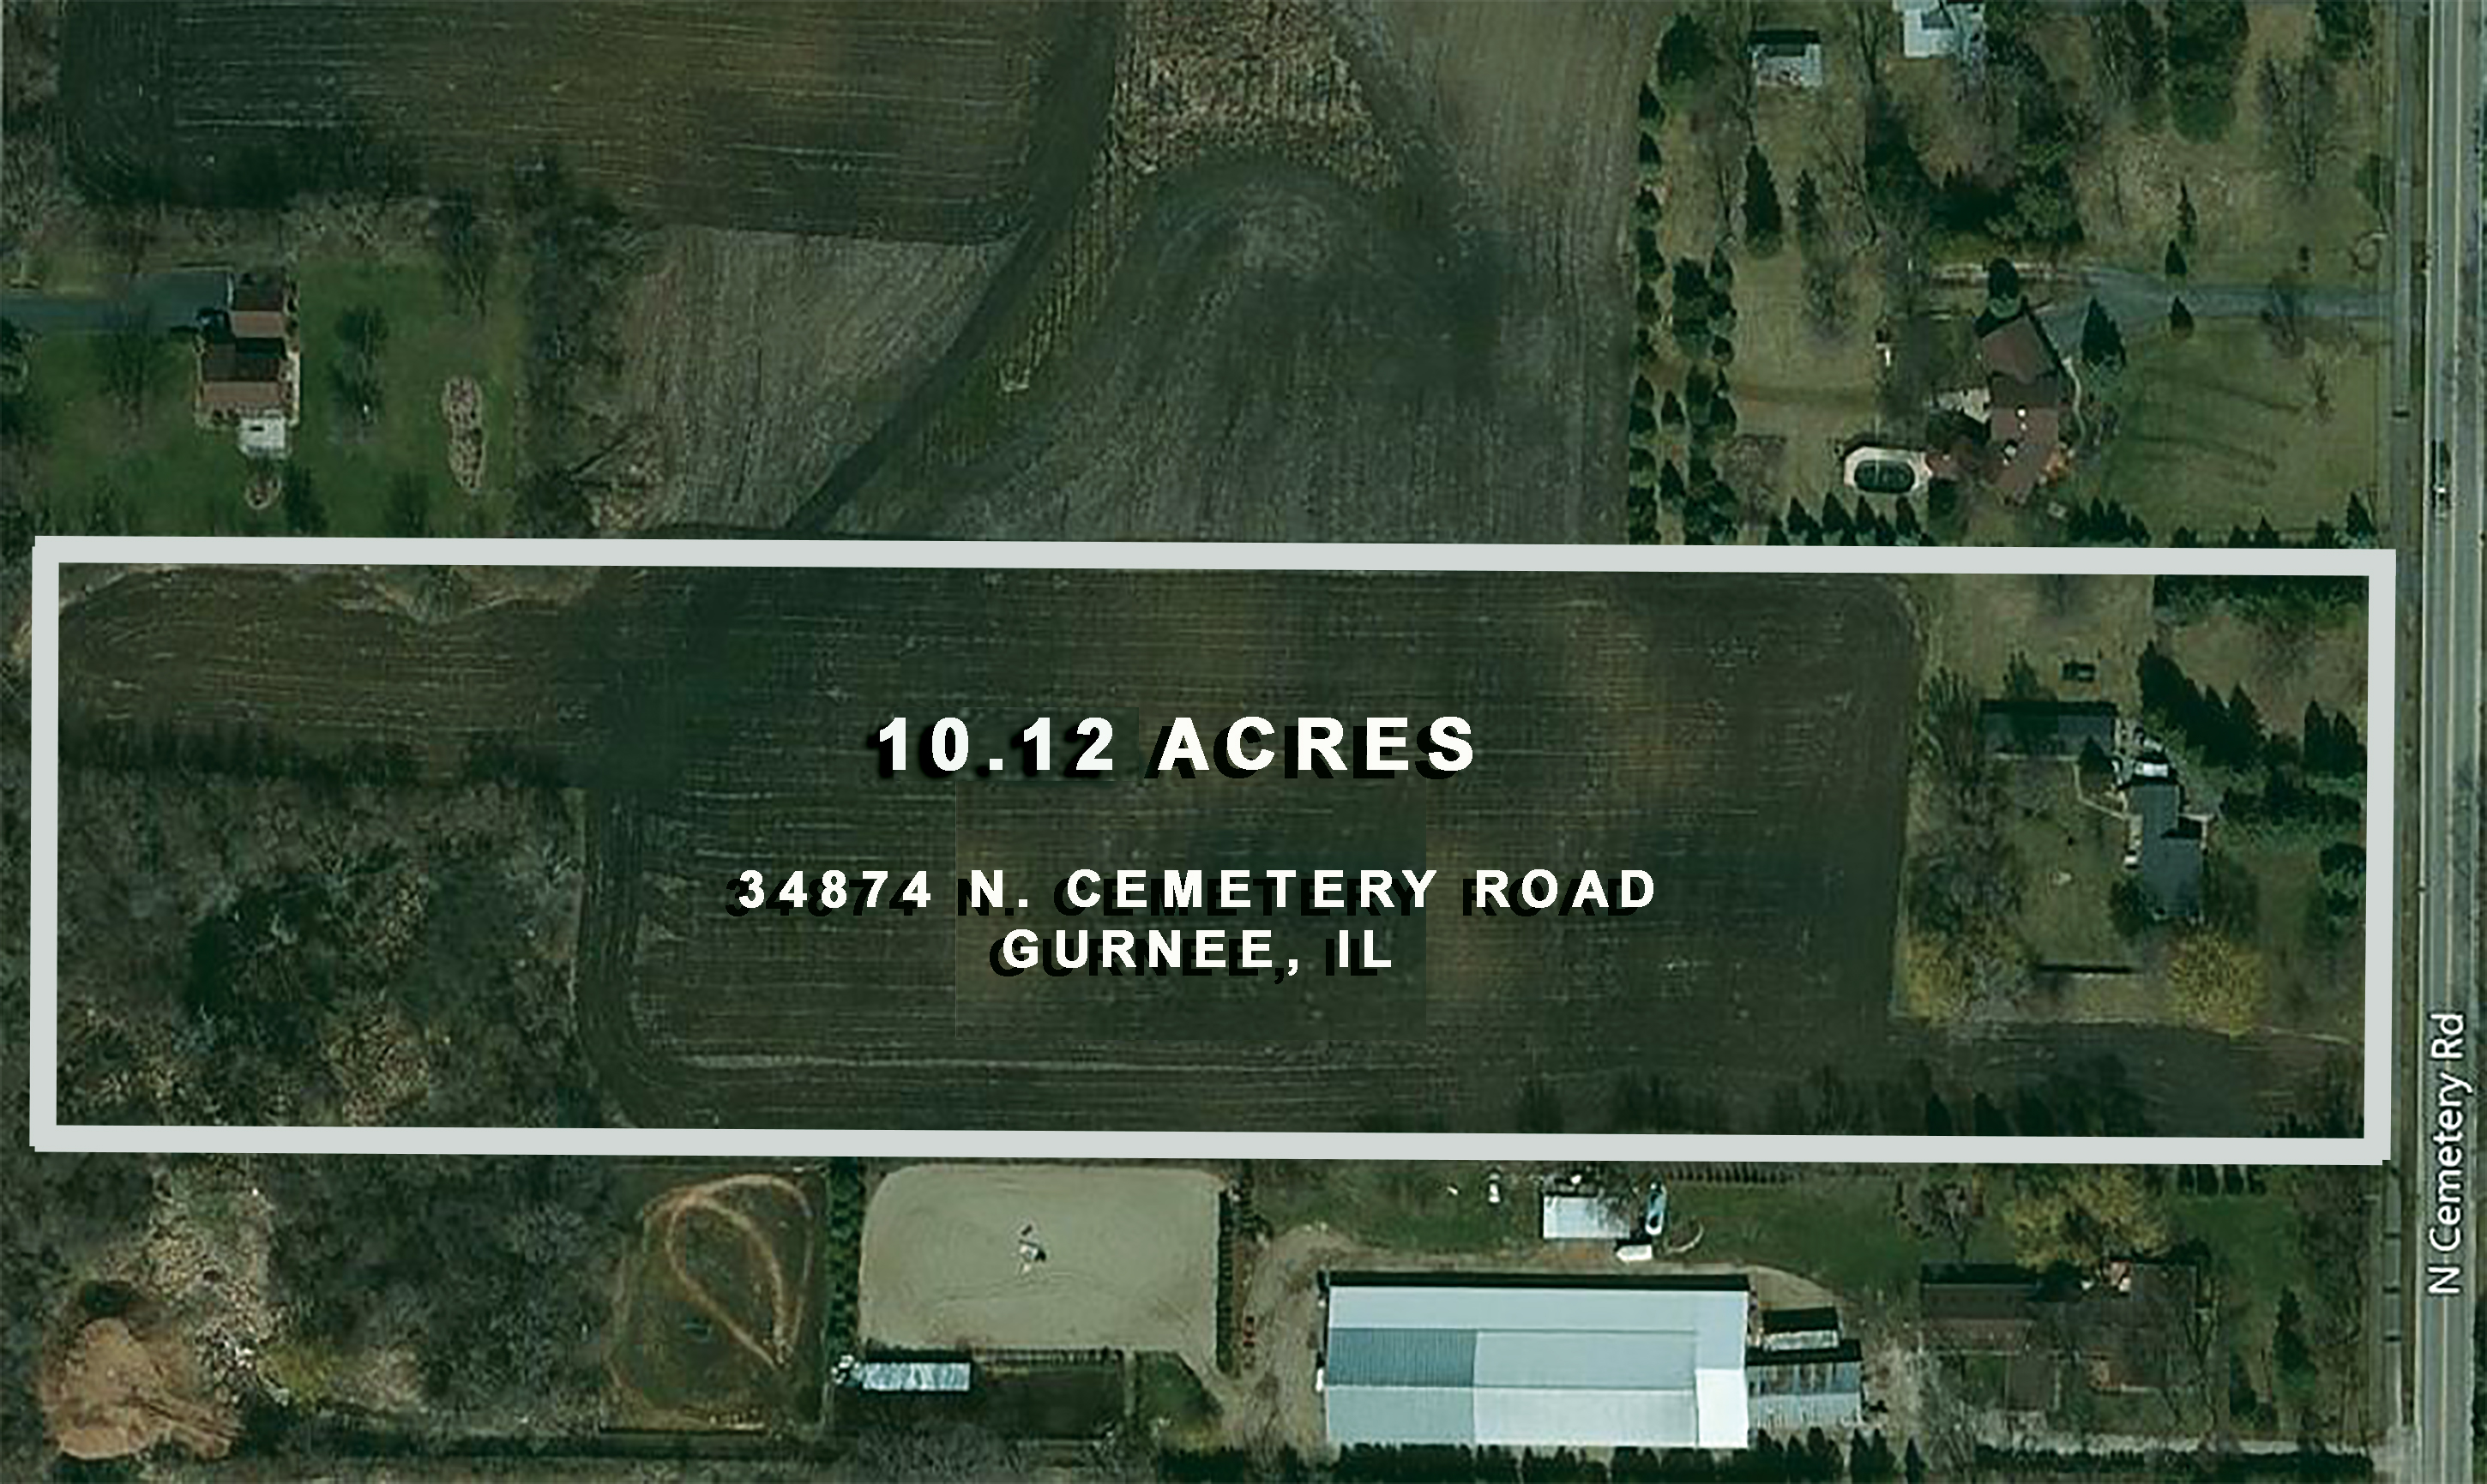 10.12 Acres, 34874 N. Cemetery Road, Gurnee, IL